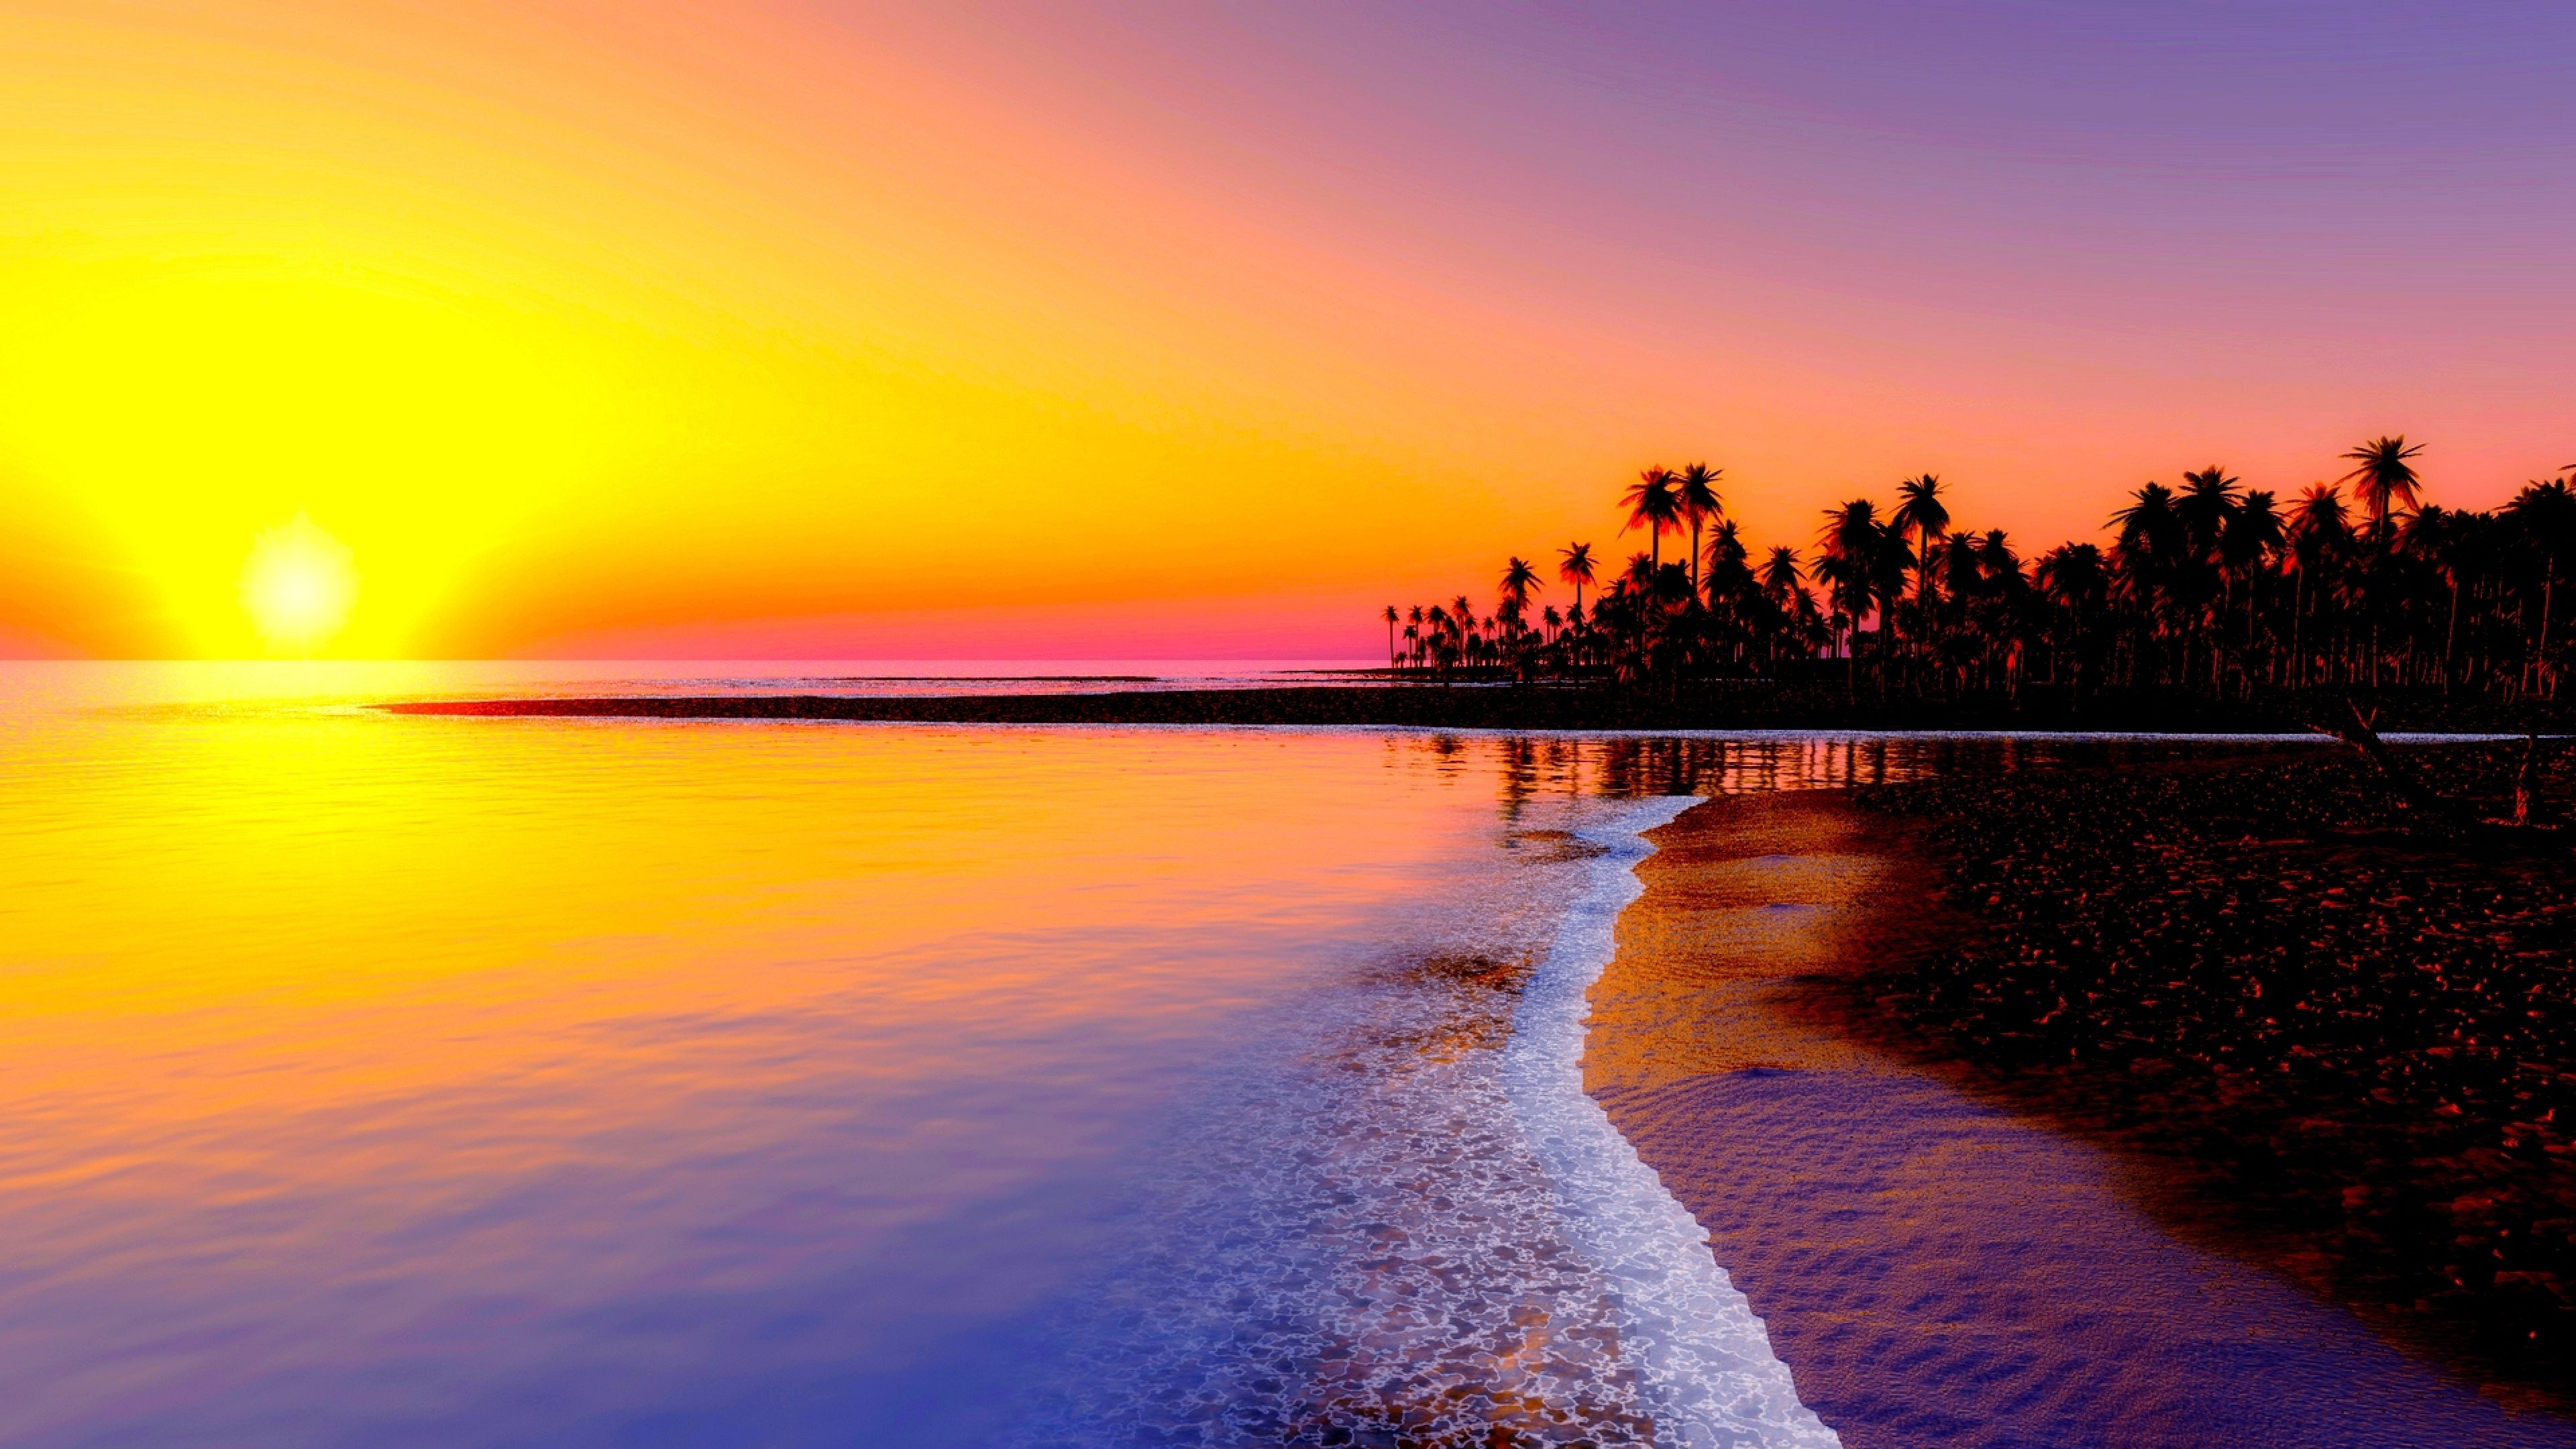 4k Sunset Wallpaper In 2019 Beach Background Beach